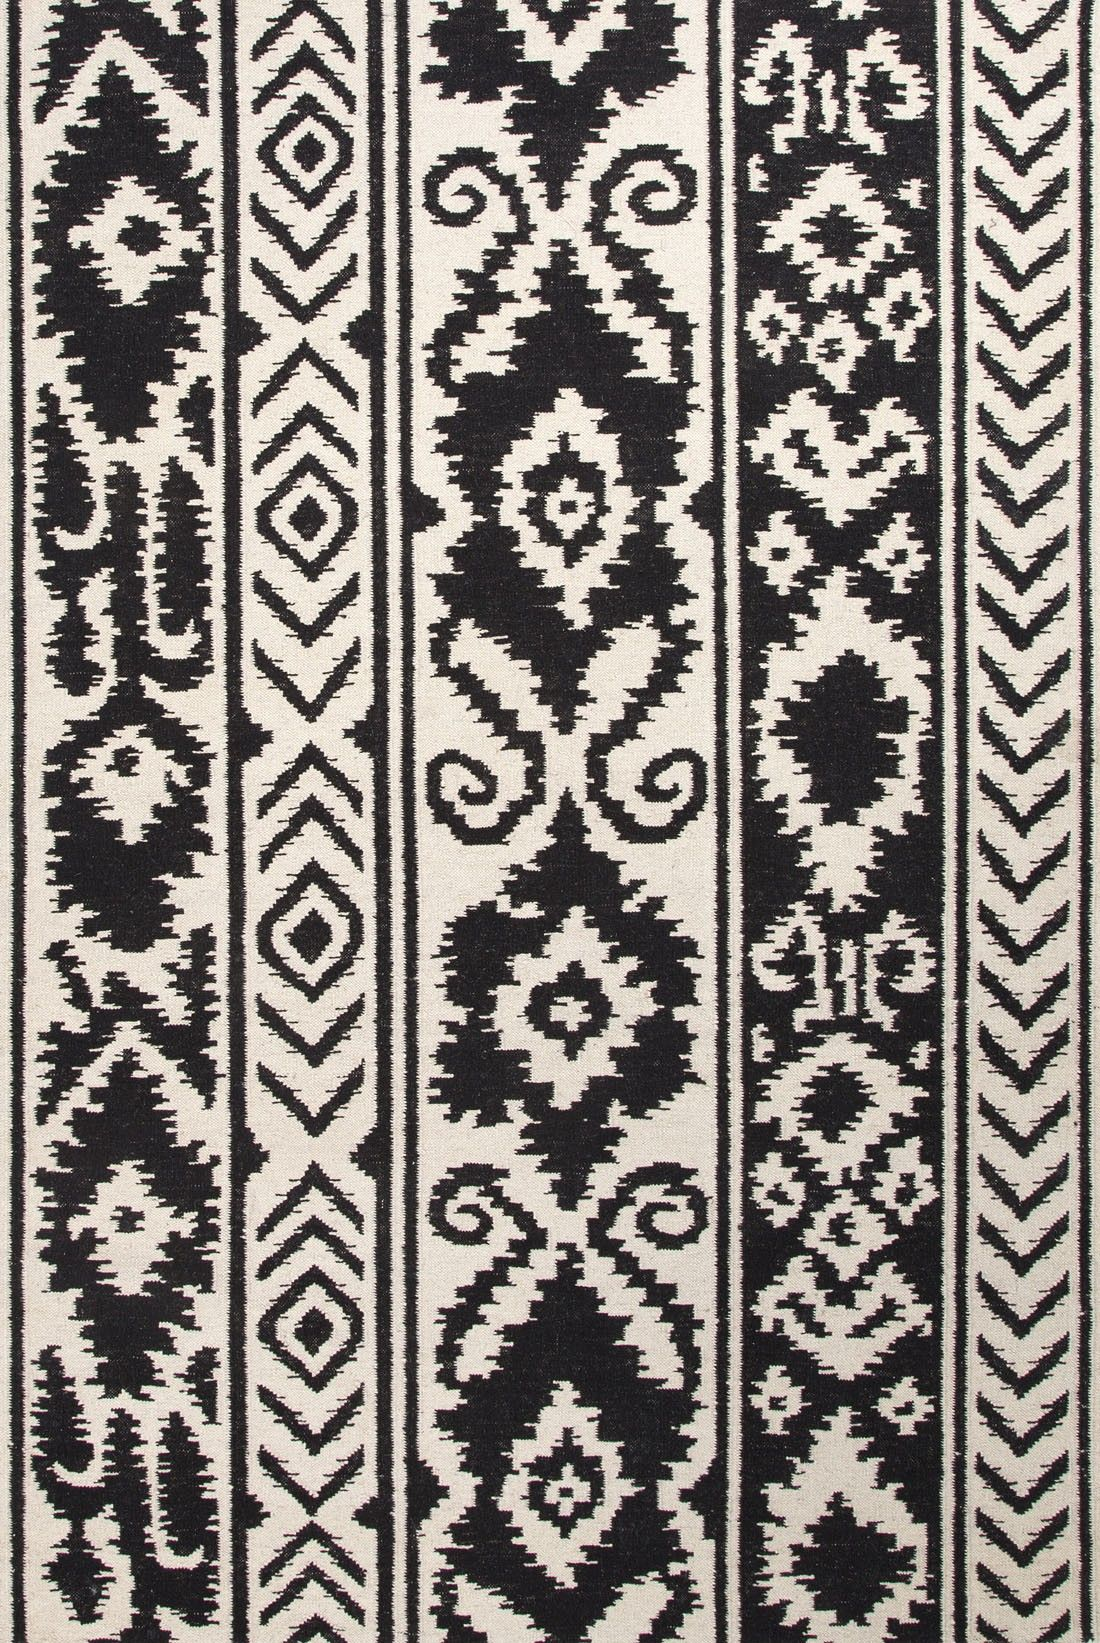 Flat Weave Tribal Pattern Wool Ivory Black Area Rug 5 X 8